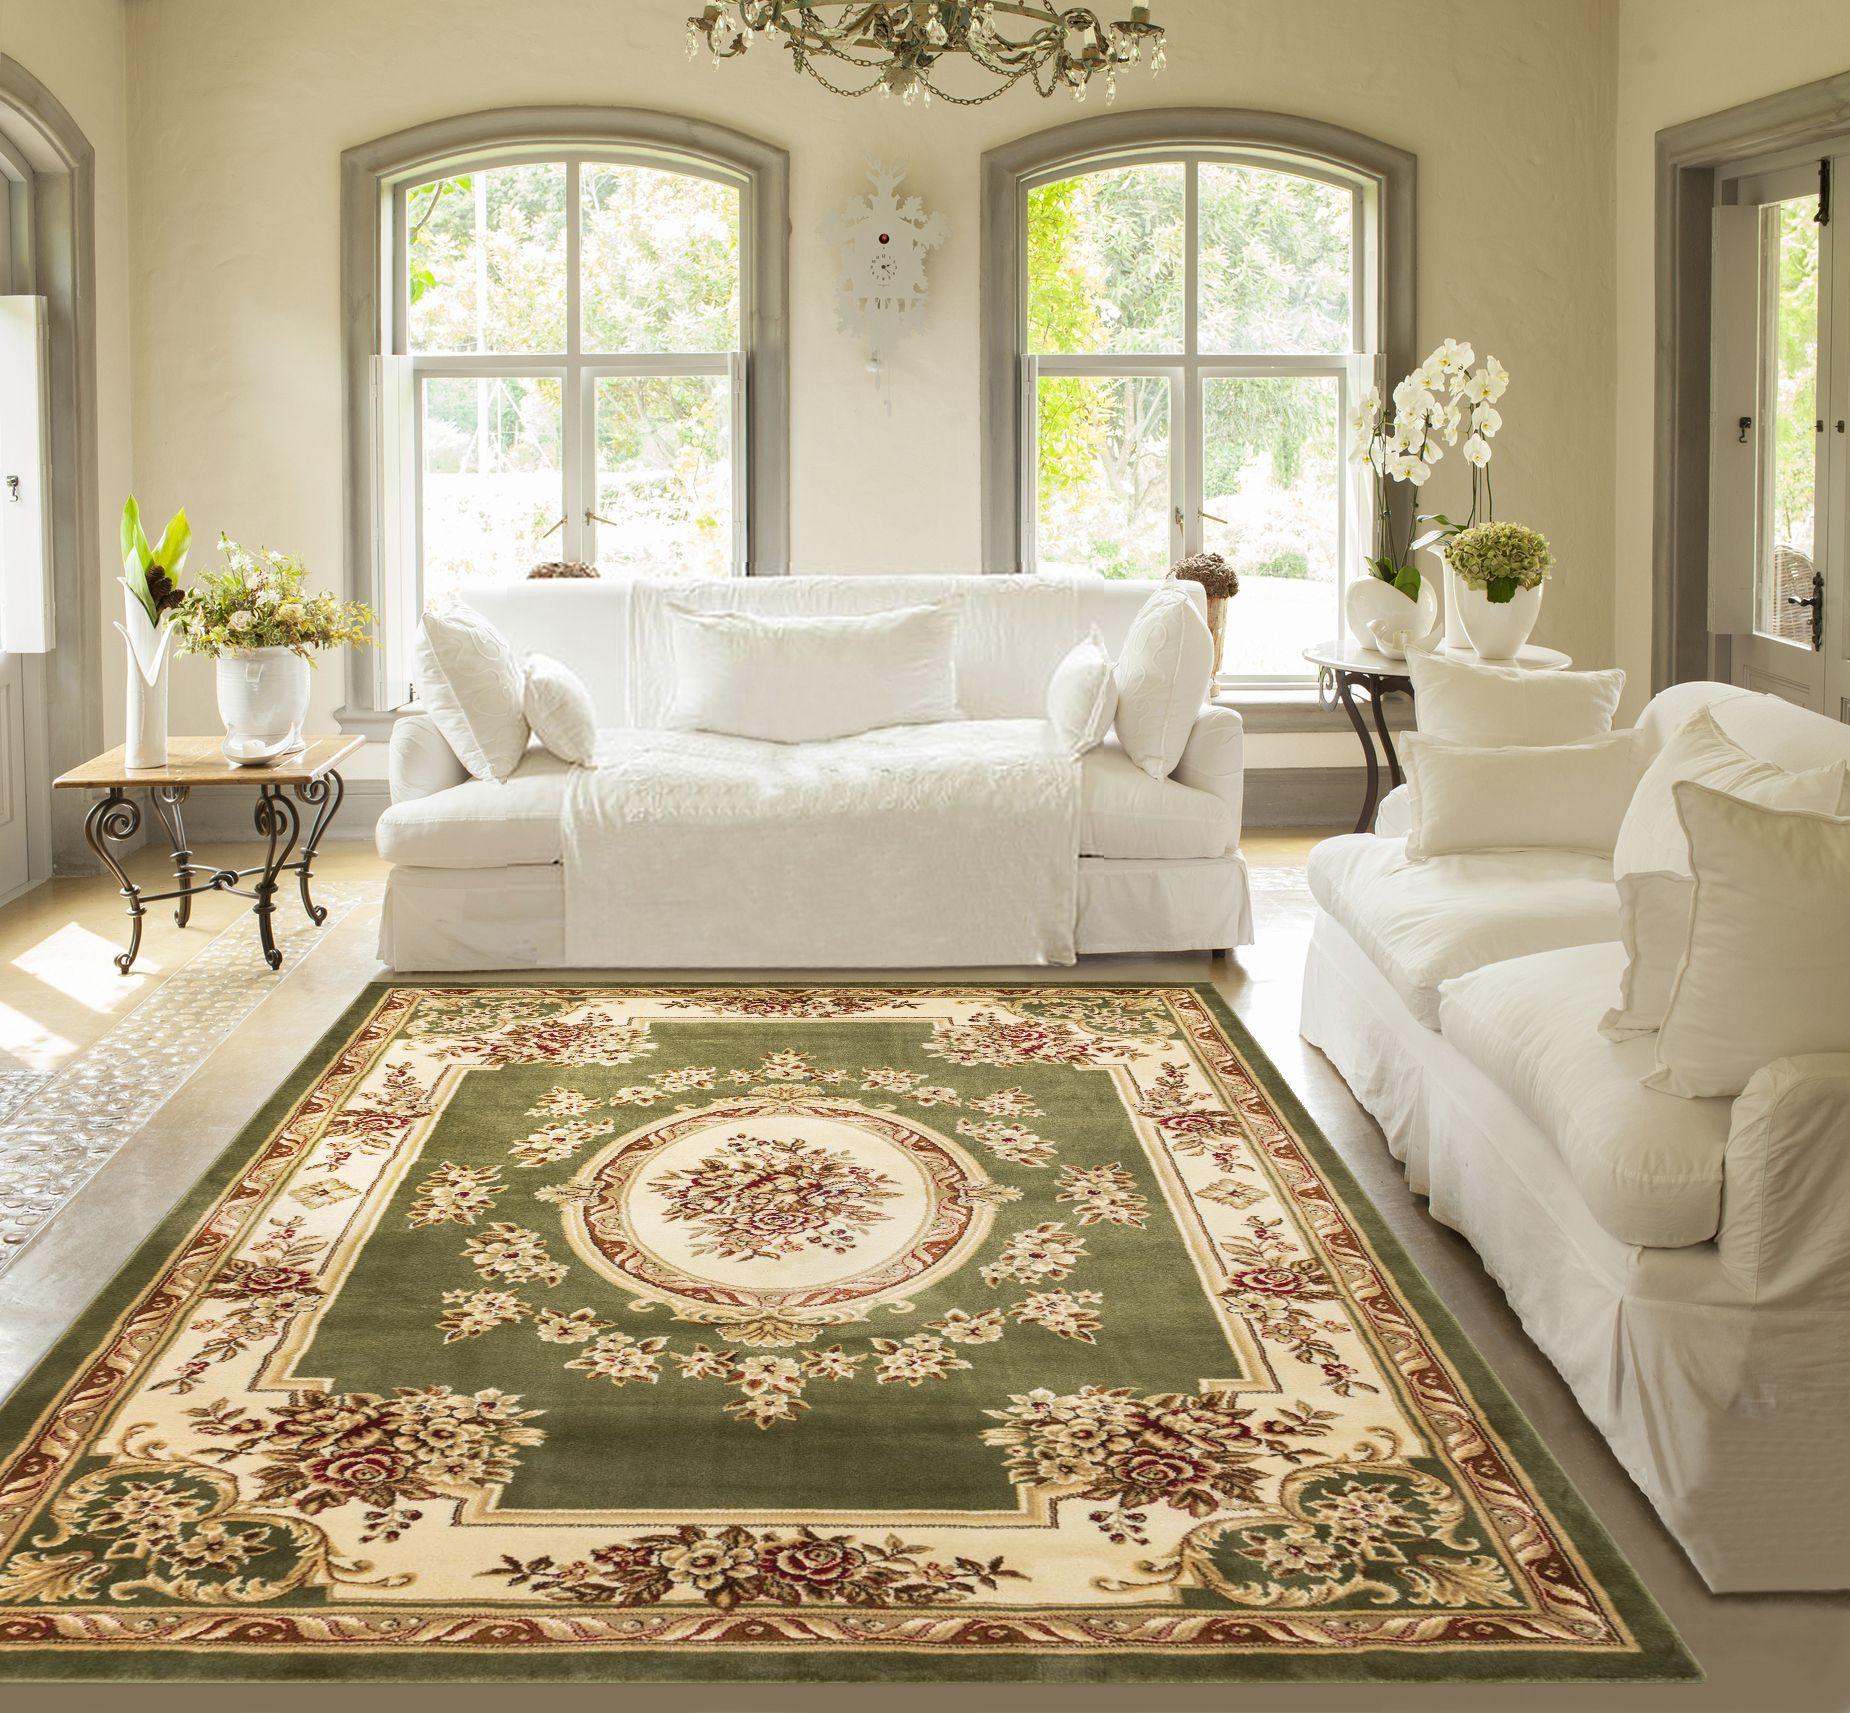 """Well Woven Pastoral Medallion Green French European Formal Traditional 4x5 (3'11"""" x 5'3"""") Area Rug Easy Clean Stain/Fade Resistant Modern Contemporary Floral Thick Soft Plush Living Dining Room Rug"""